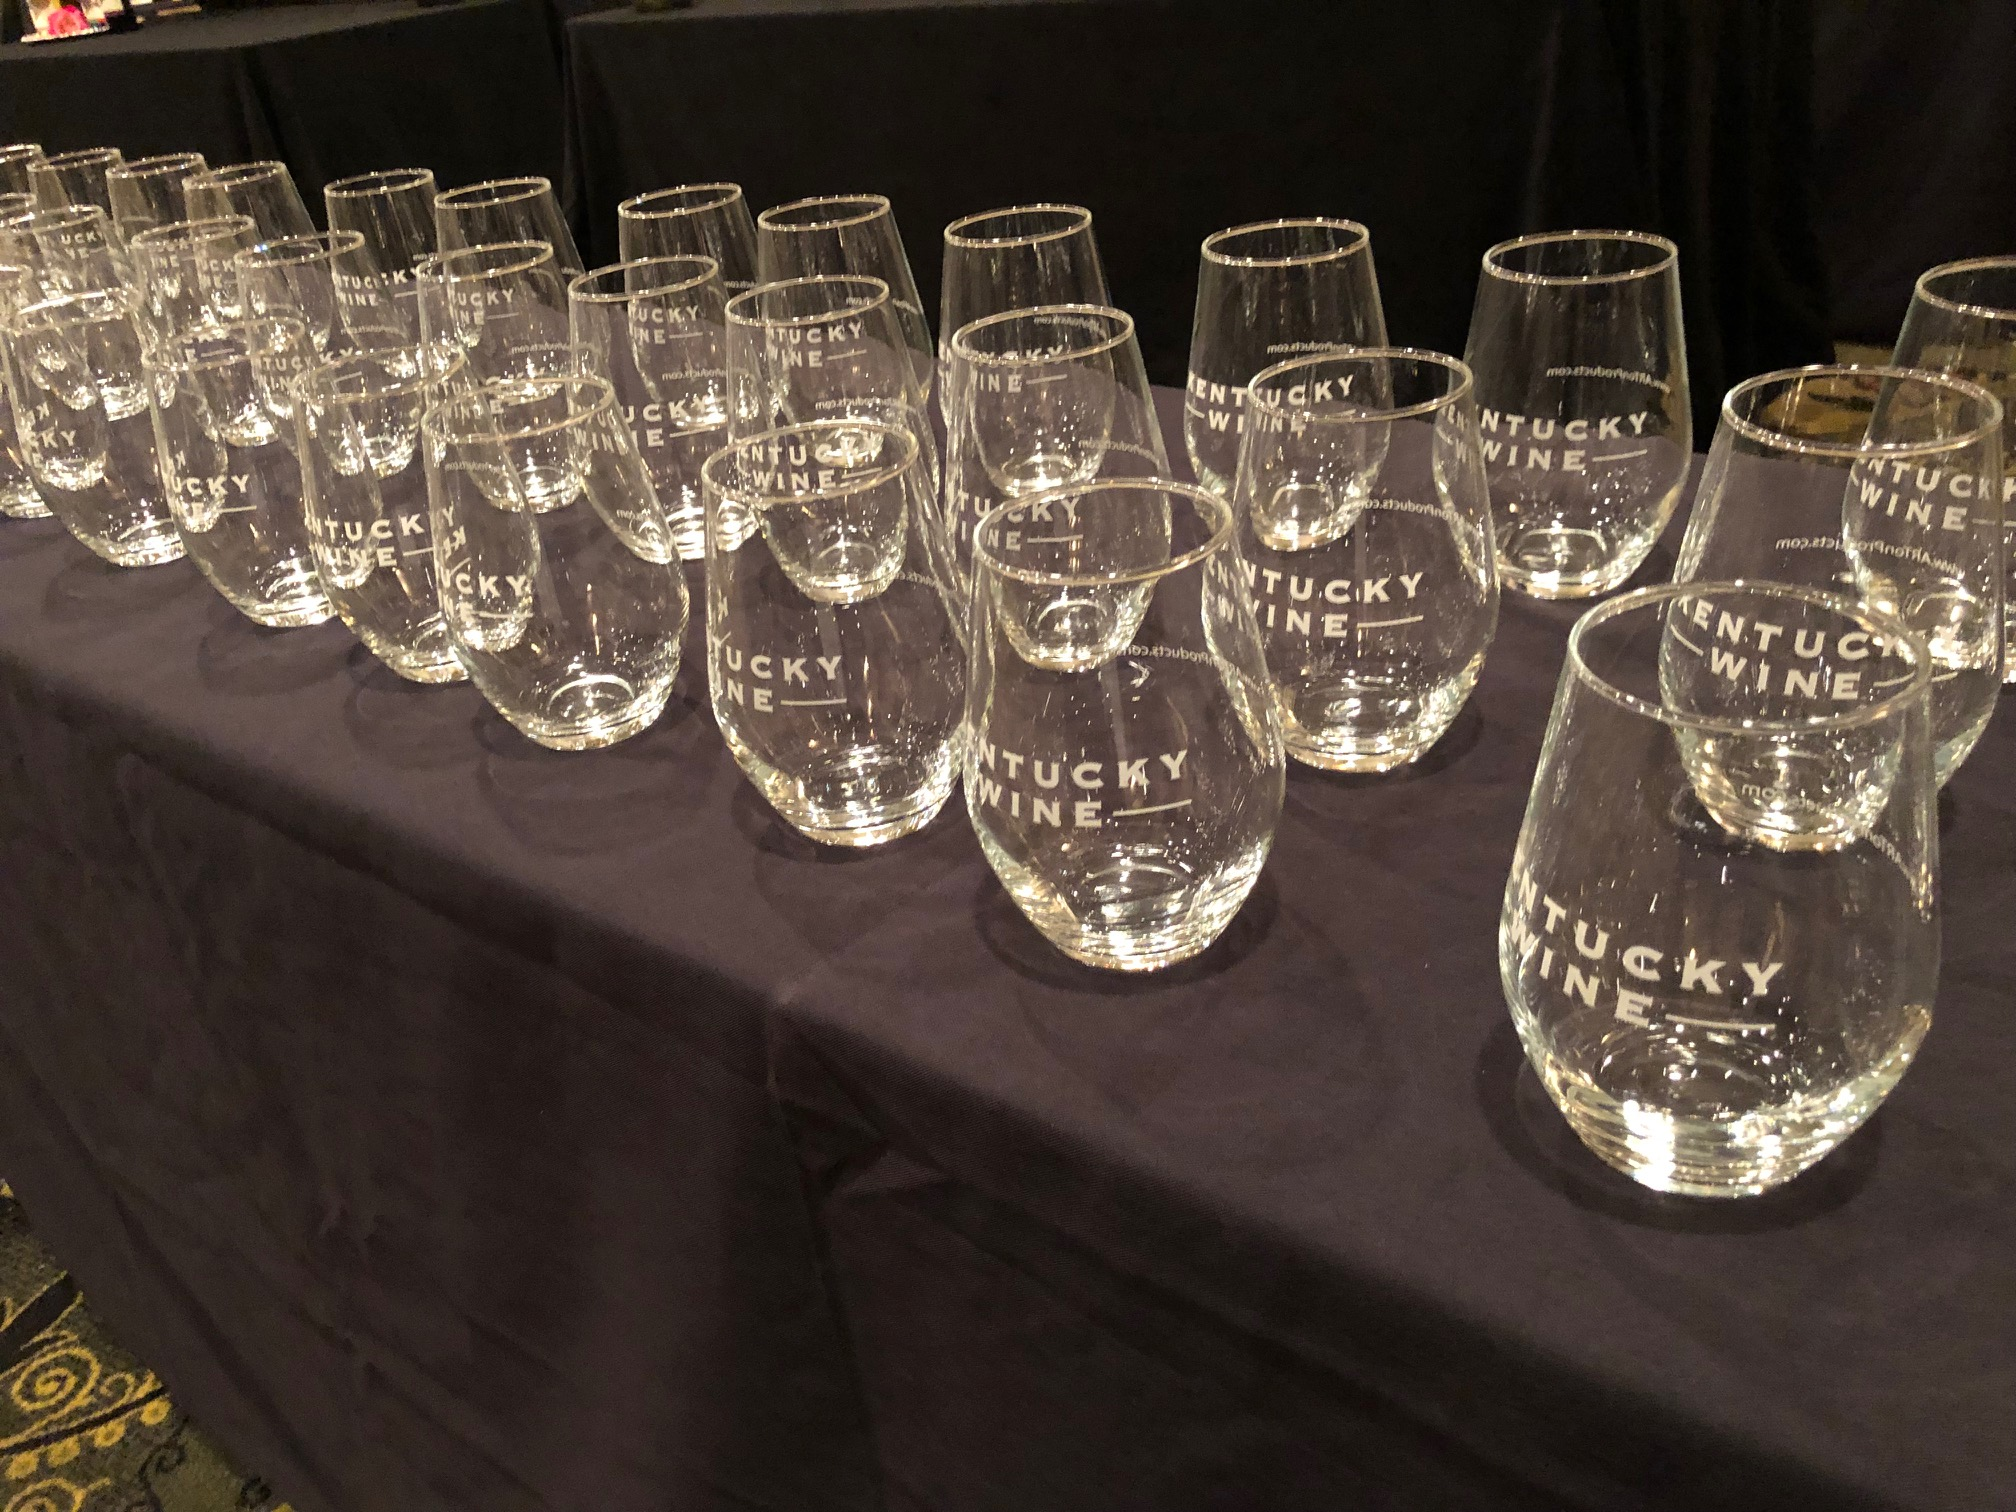 row of steamless wine glasses on a table with a black tablecloth